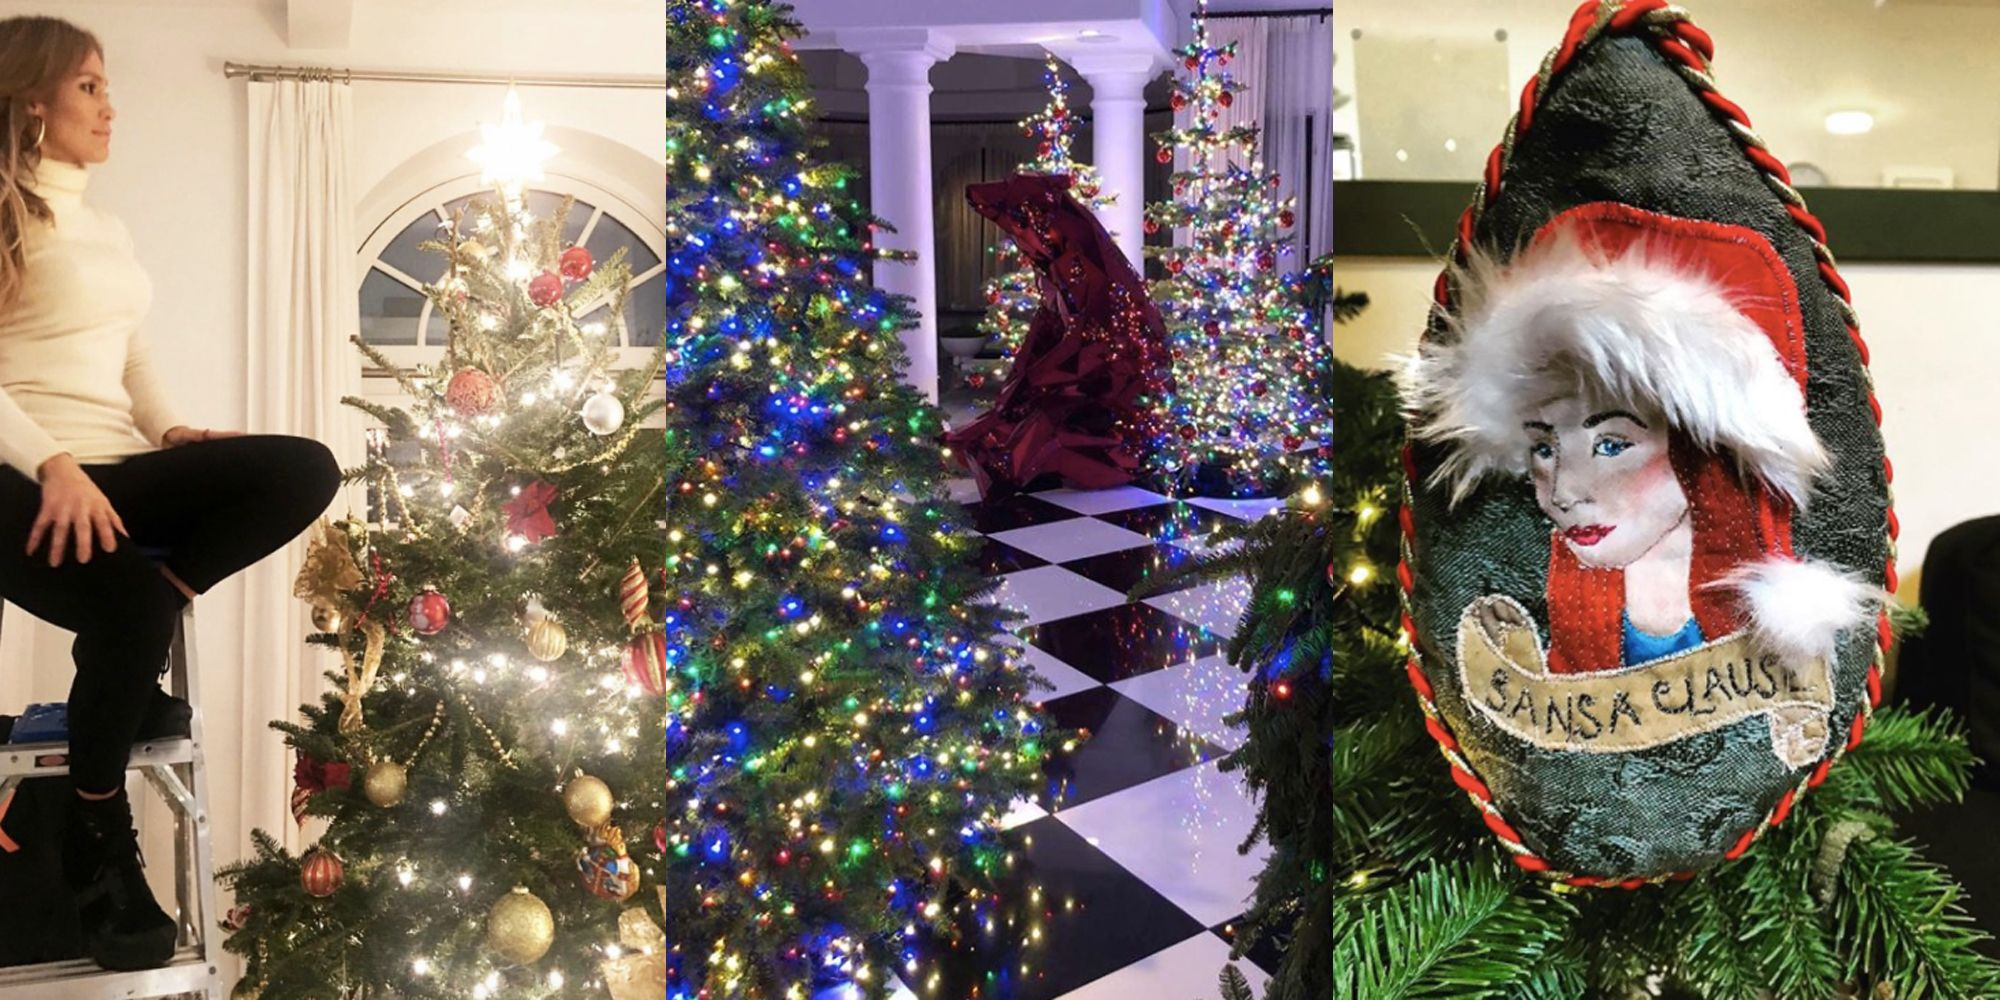 image & Celebrity Holiday Decorations - How Stars Decorate Homes and ...